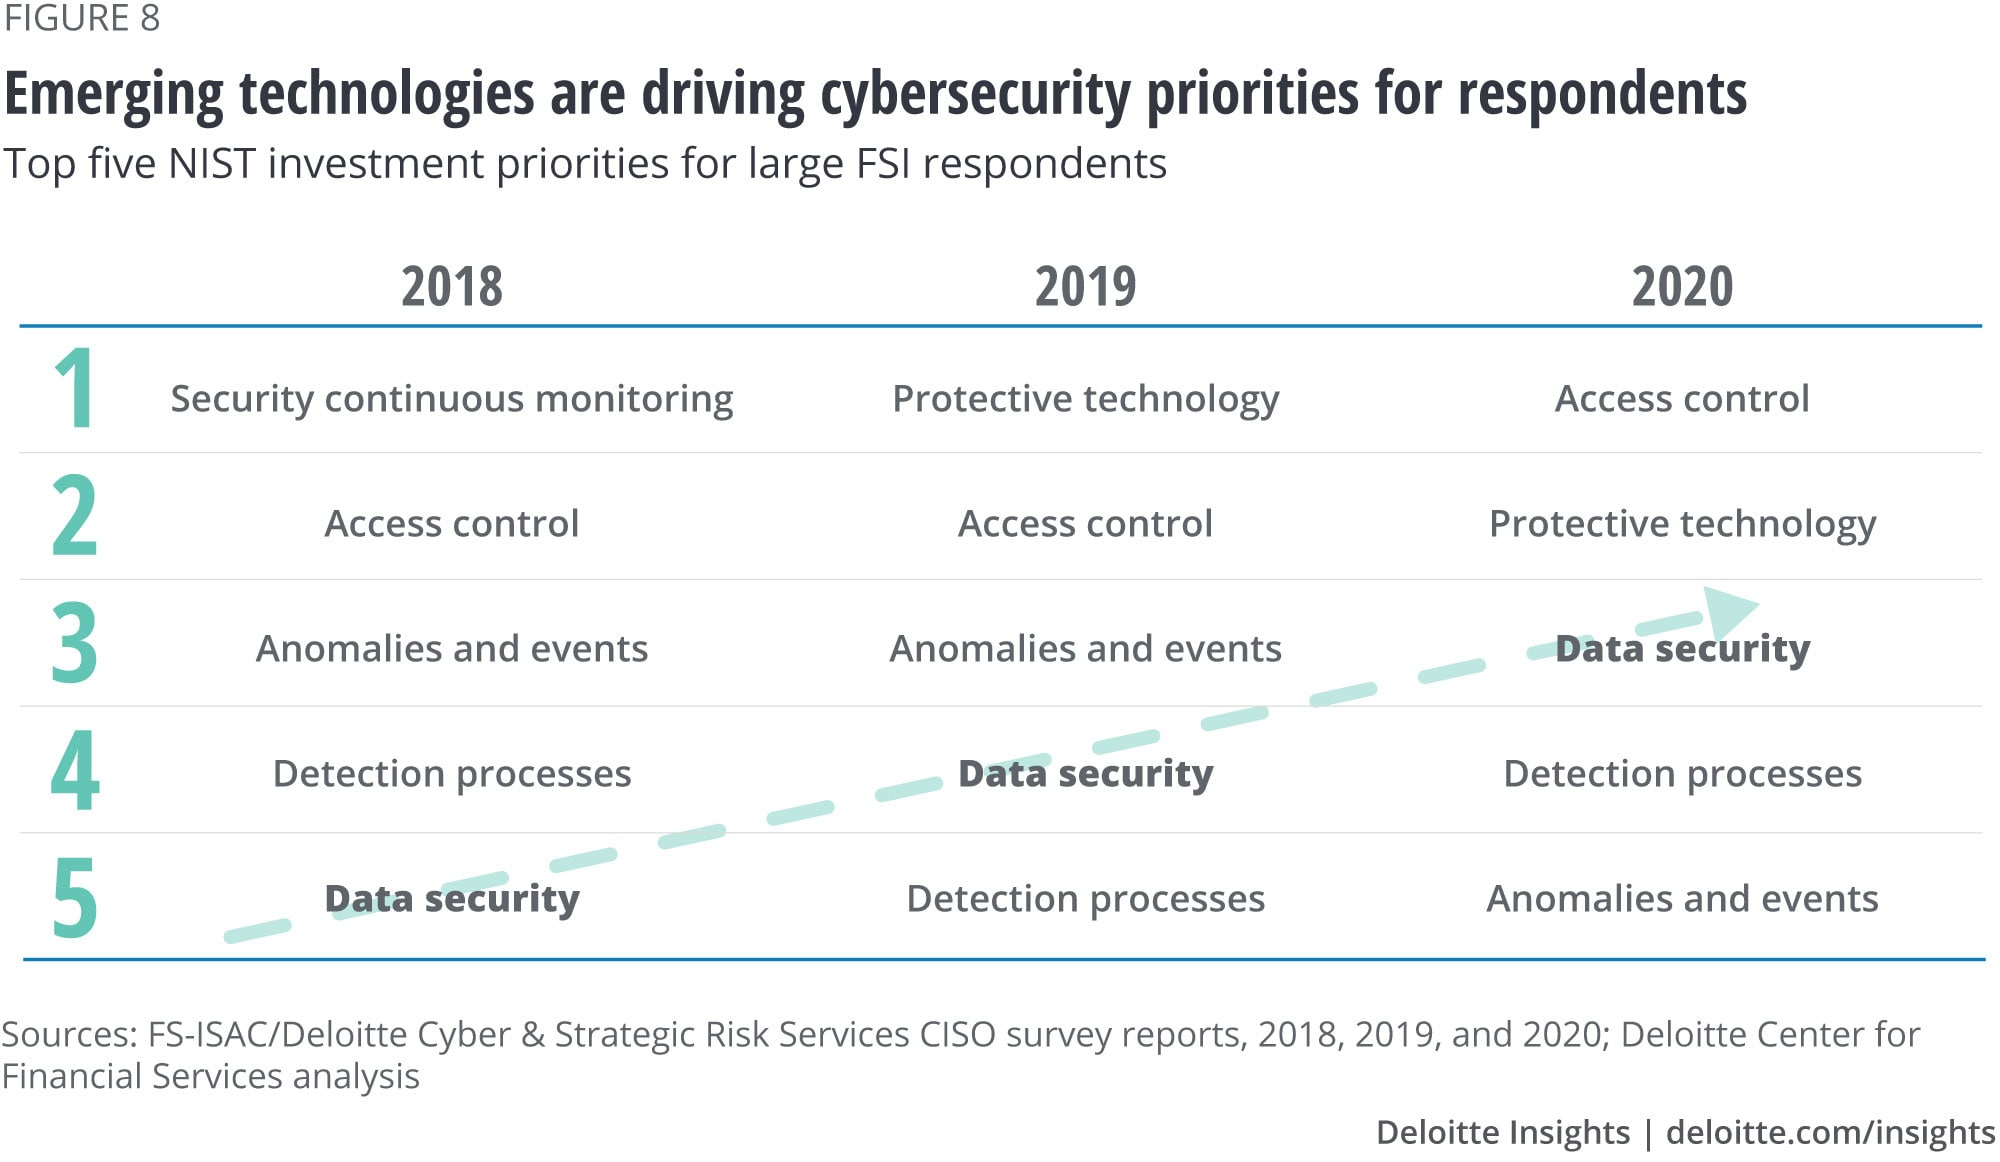 Emerging technologies are driving cybersecurity priorities for respondents